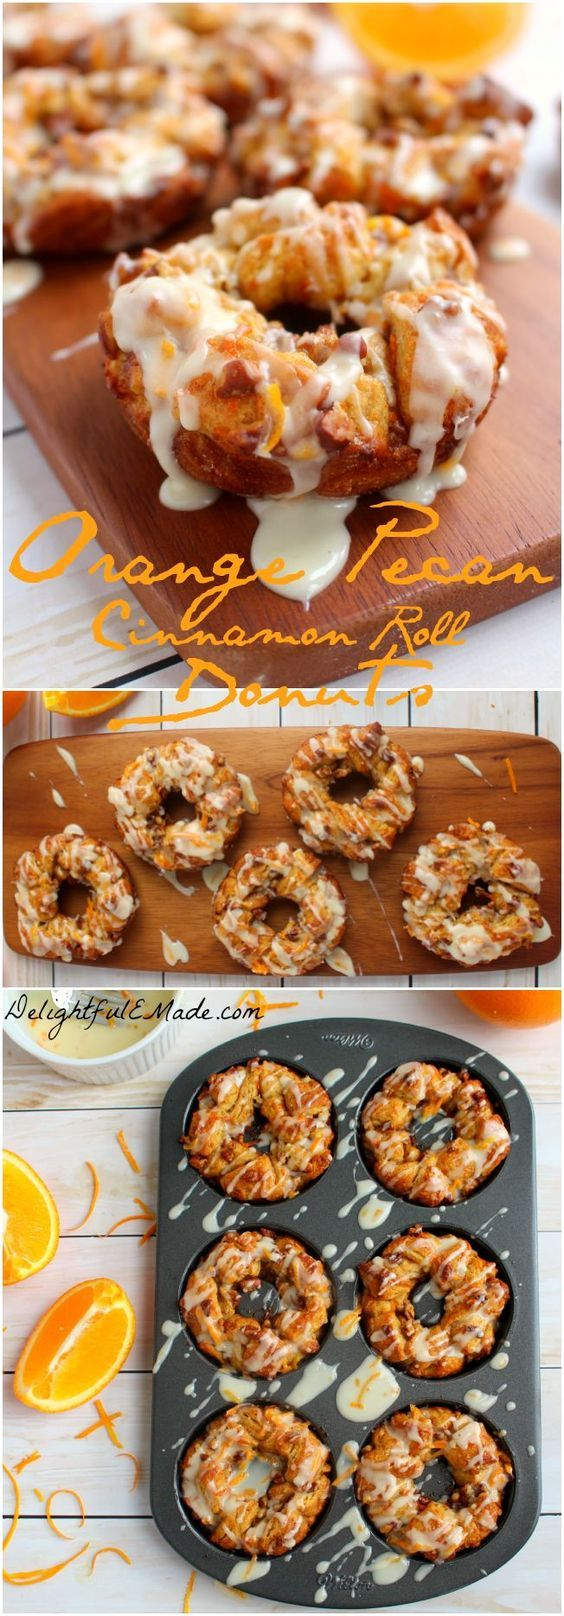 Make donuts using cinnamon rolls for the most amazing treat! Orange zest, chopped pecans and an orange glaze top these easy-to-make donuts, perfect for any morning.